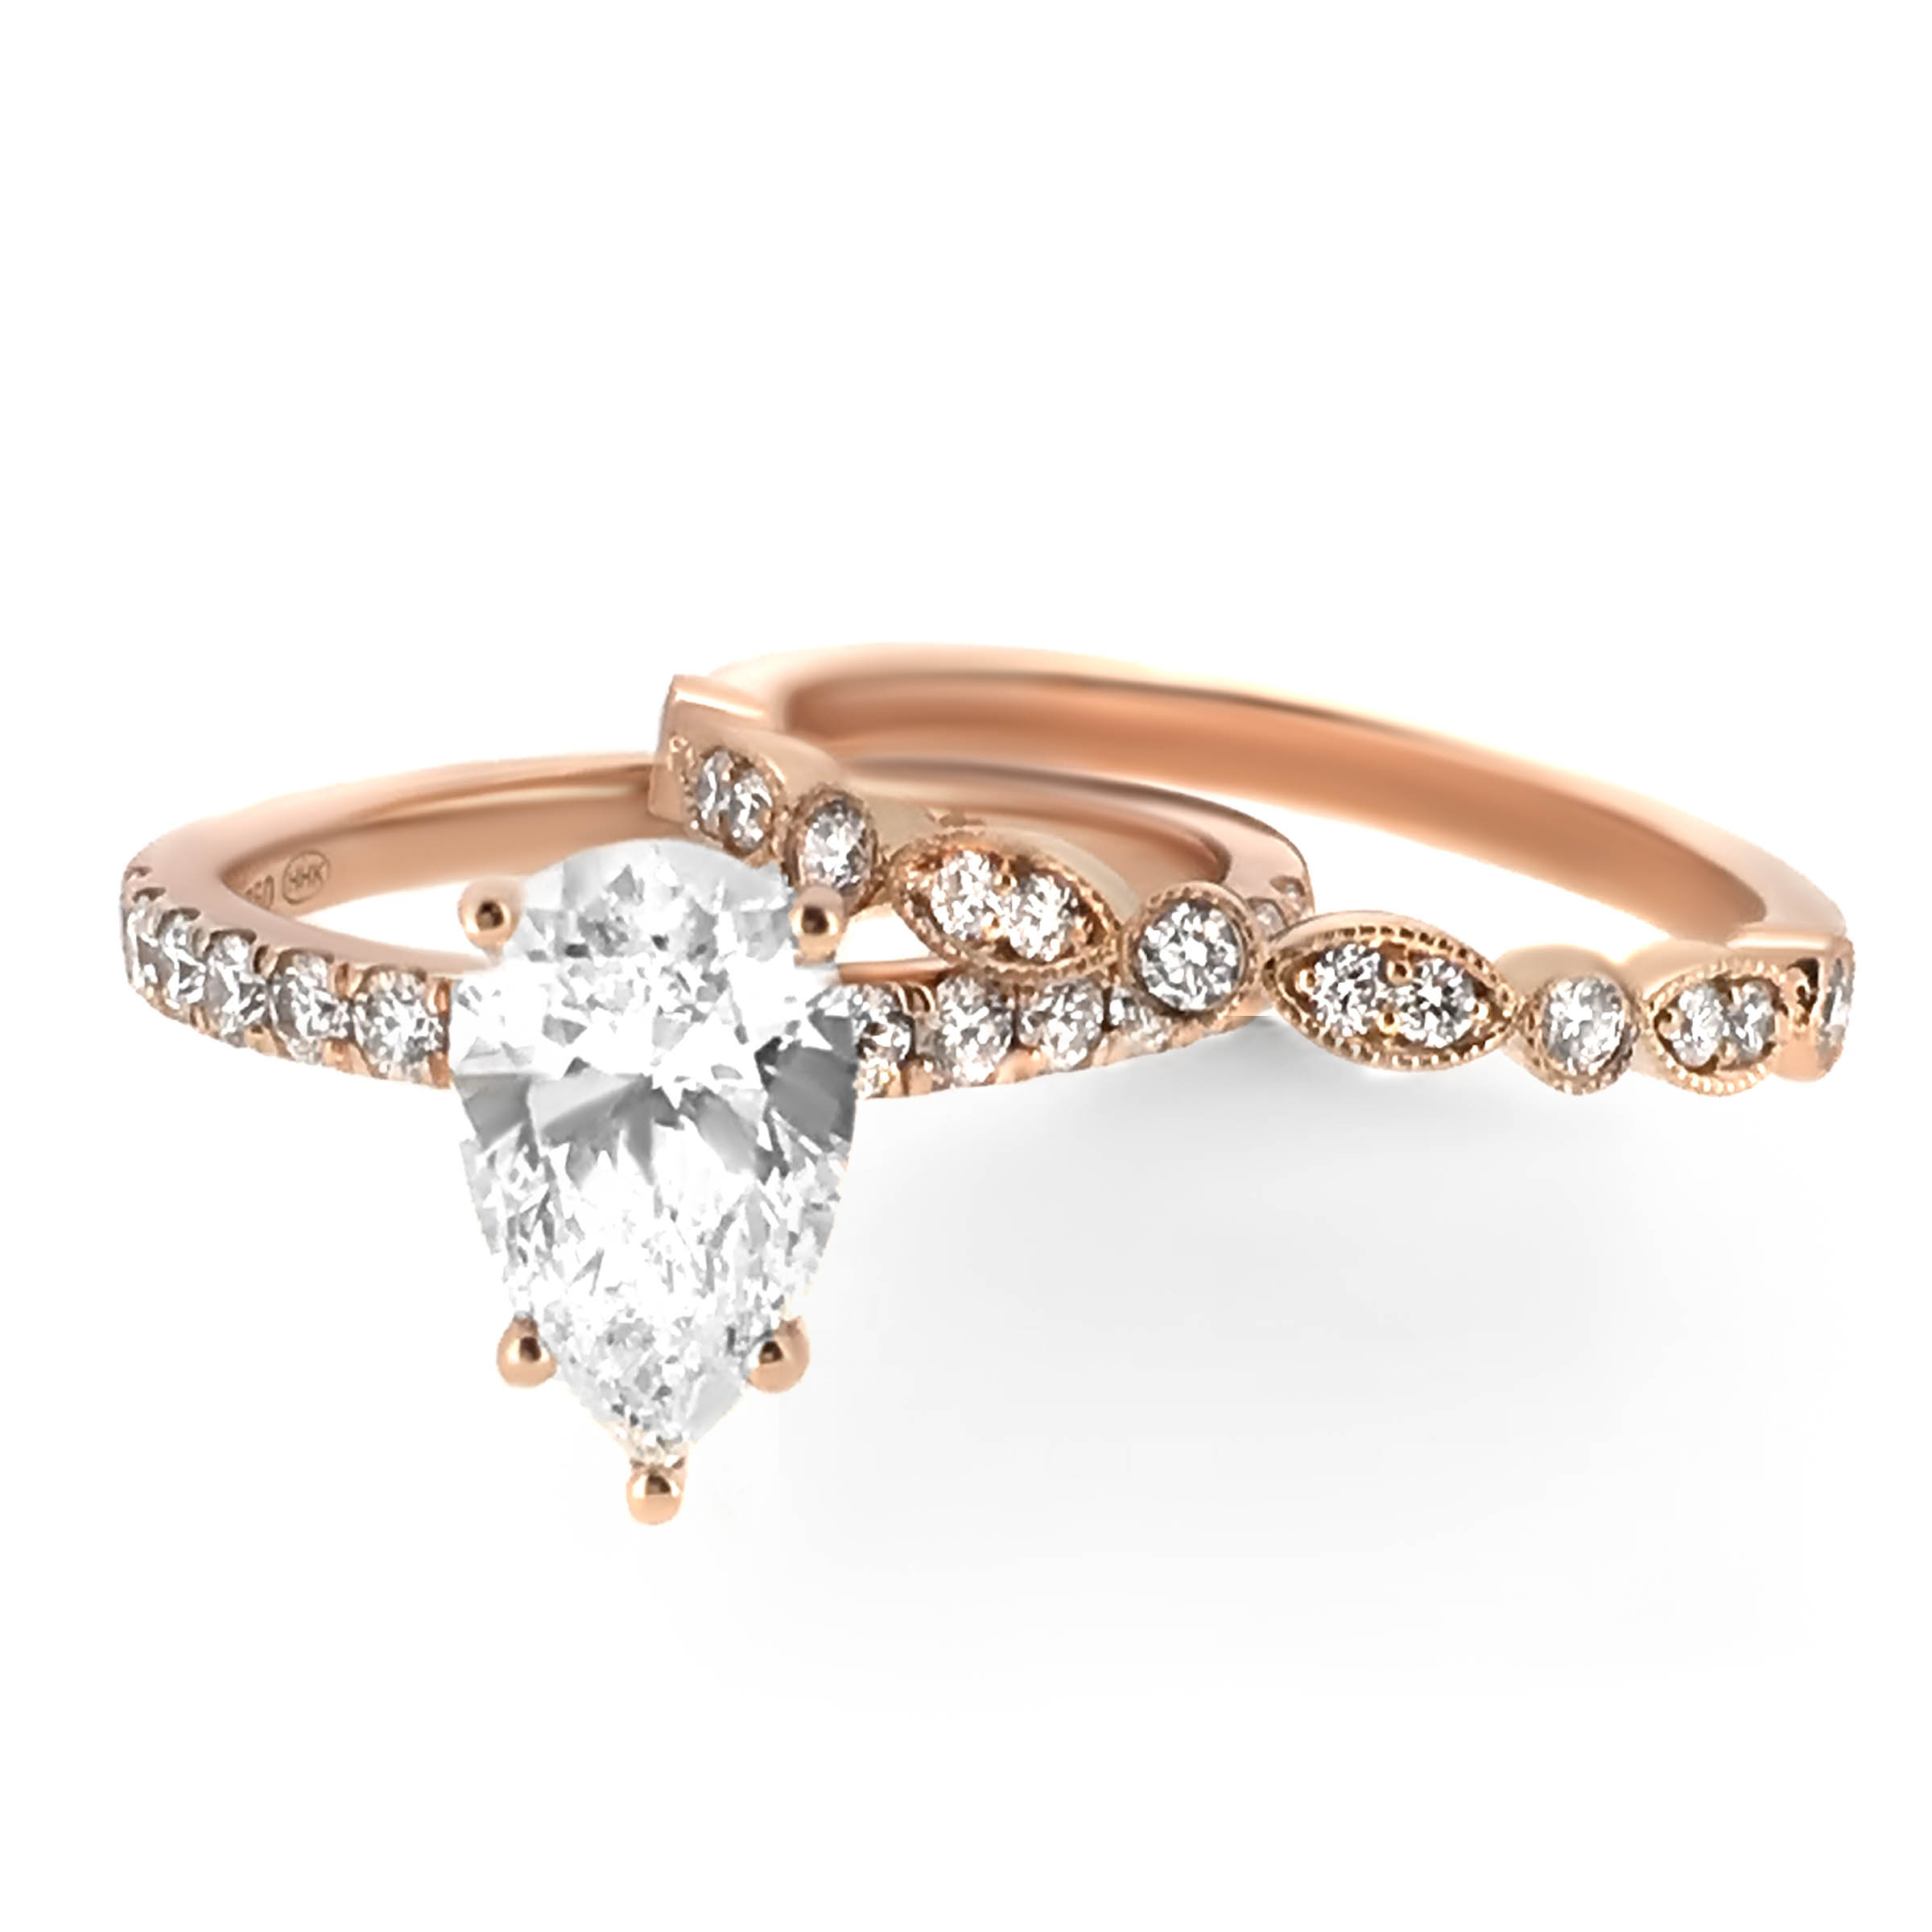 pear diamond ring and wedding band set -haywards of hong kong